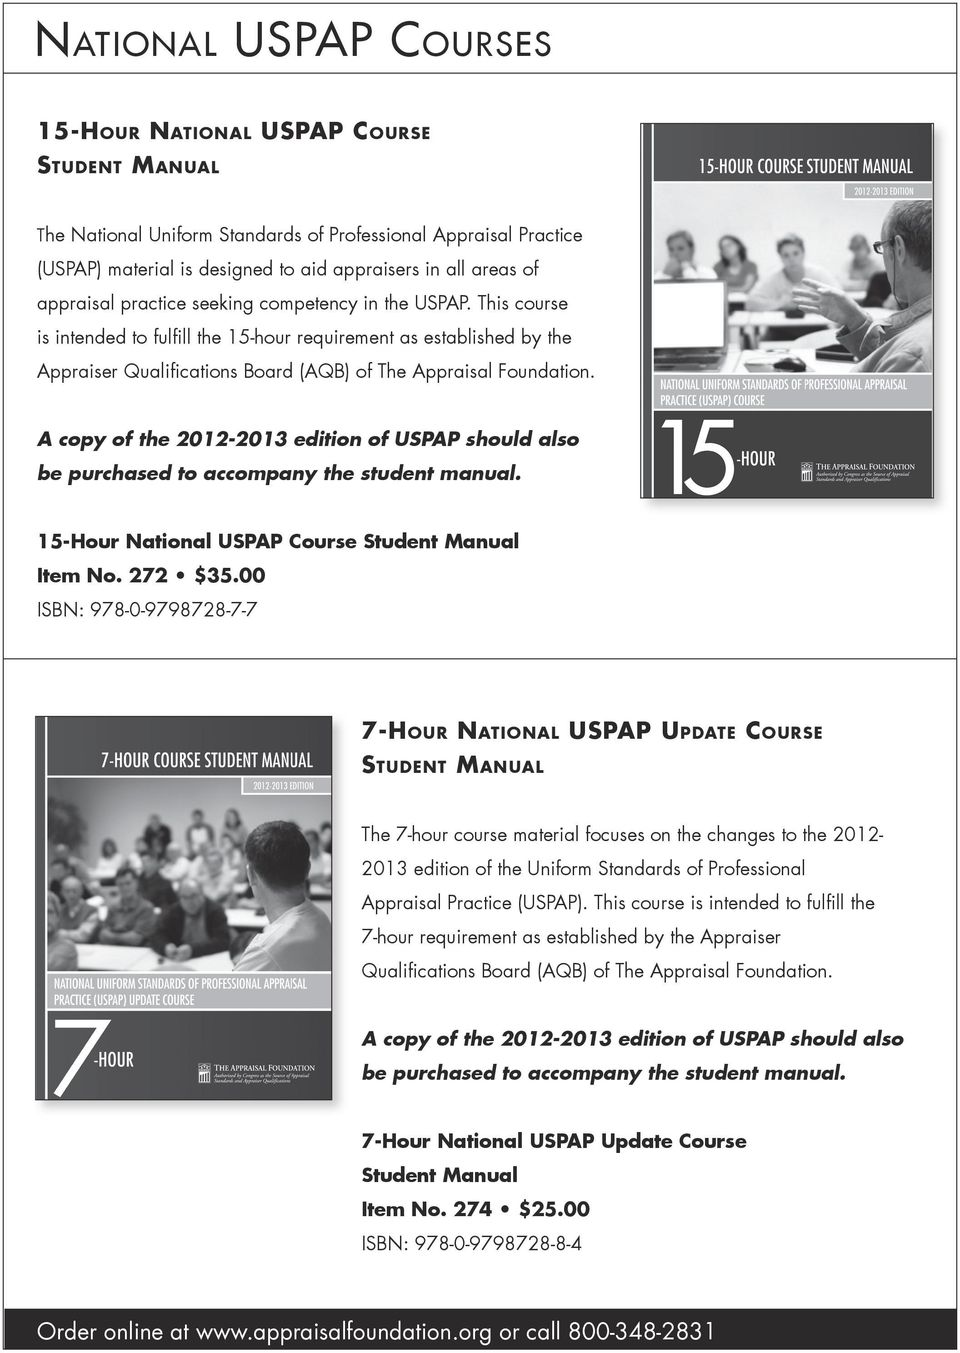 A copy of the 2012-2013 edition of USPAP should also be purchased to  accompany